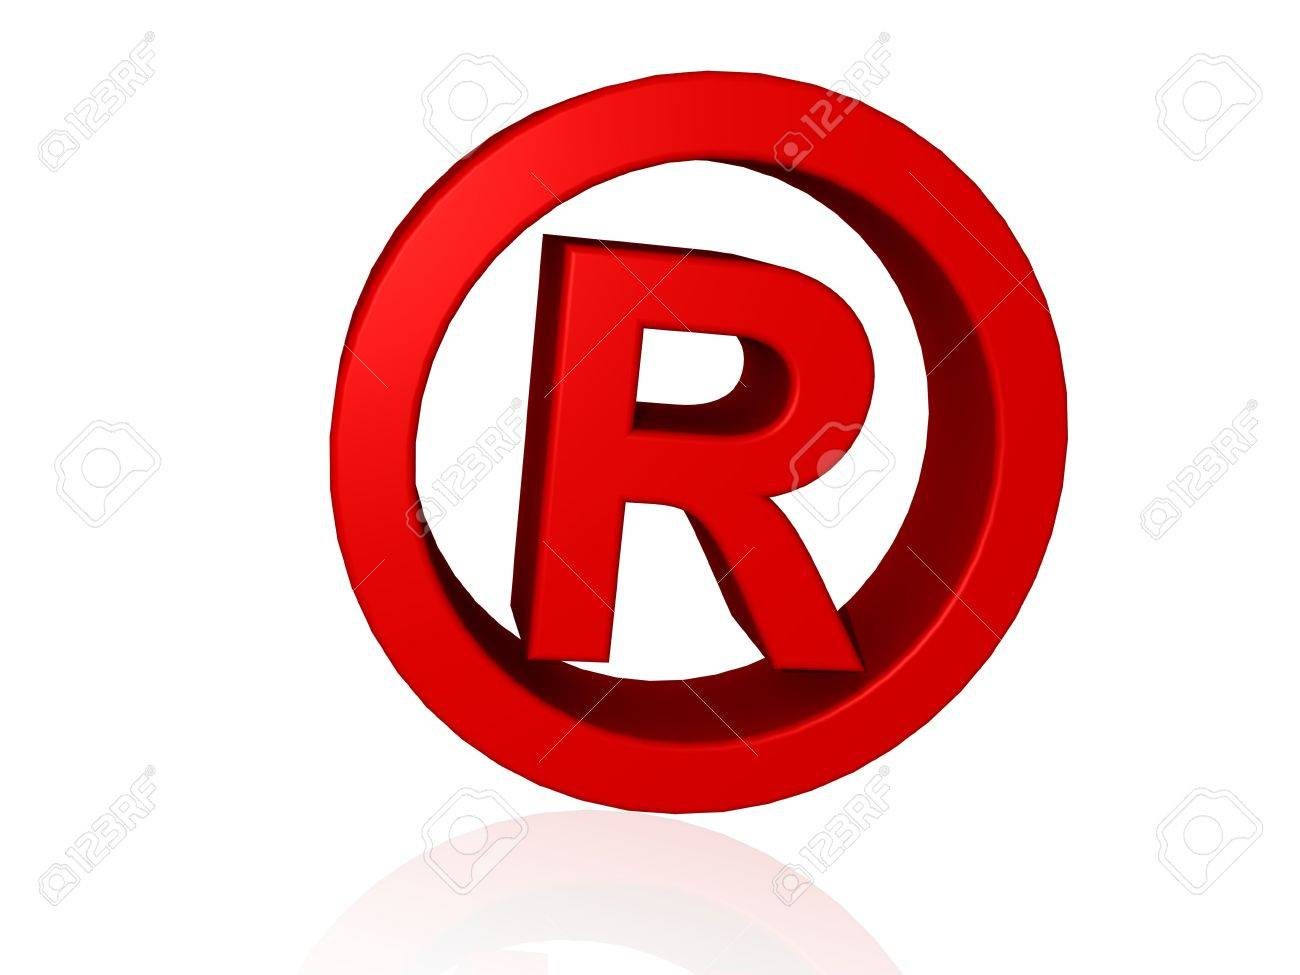 Registered Trade Mark Symbol In 3d Stock Photo Picture And Royalty